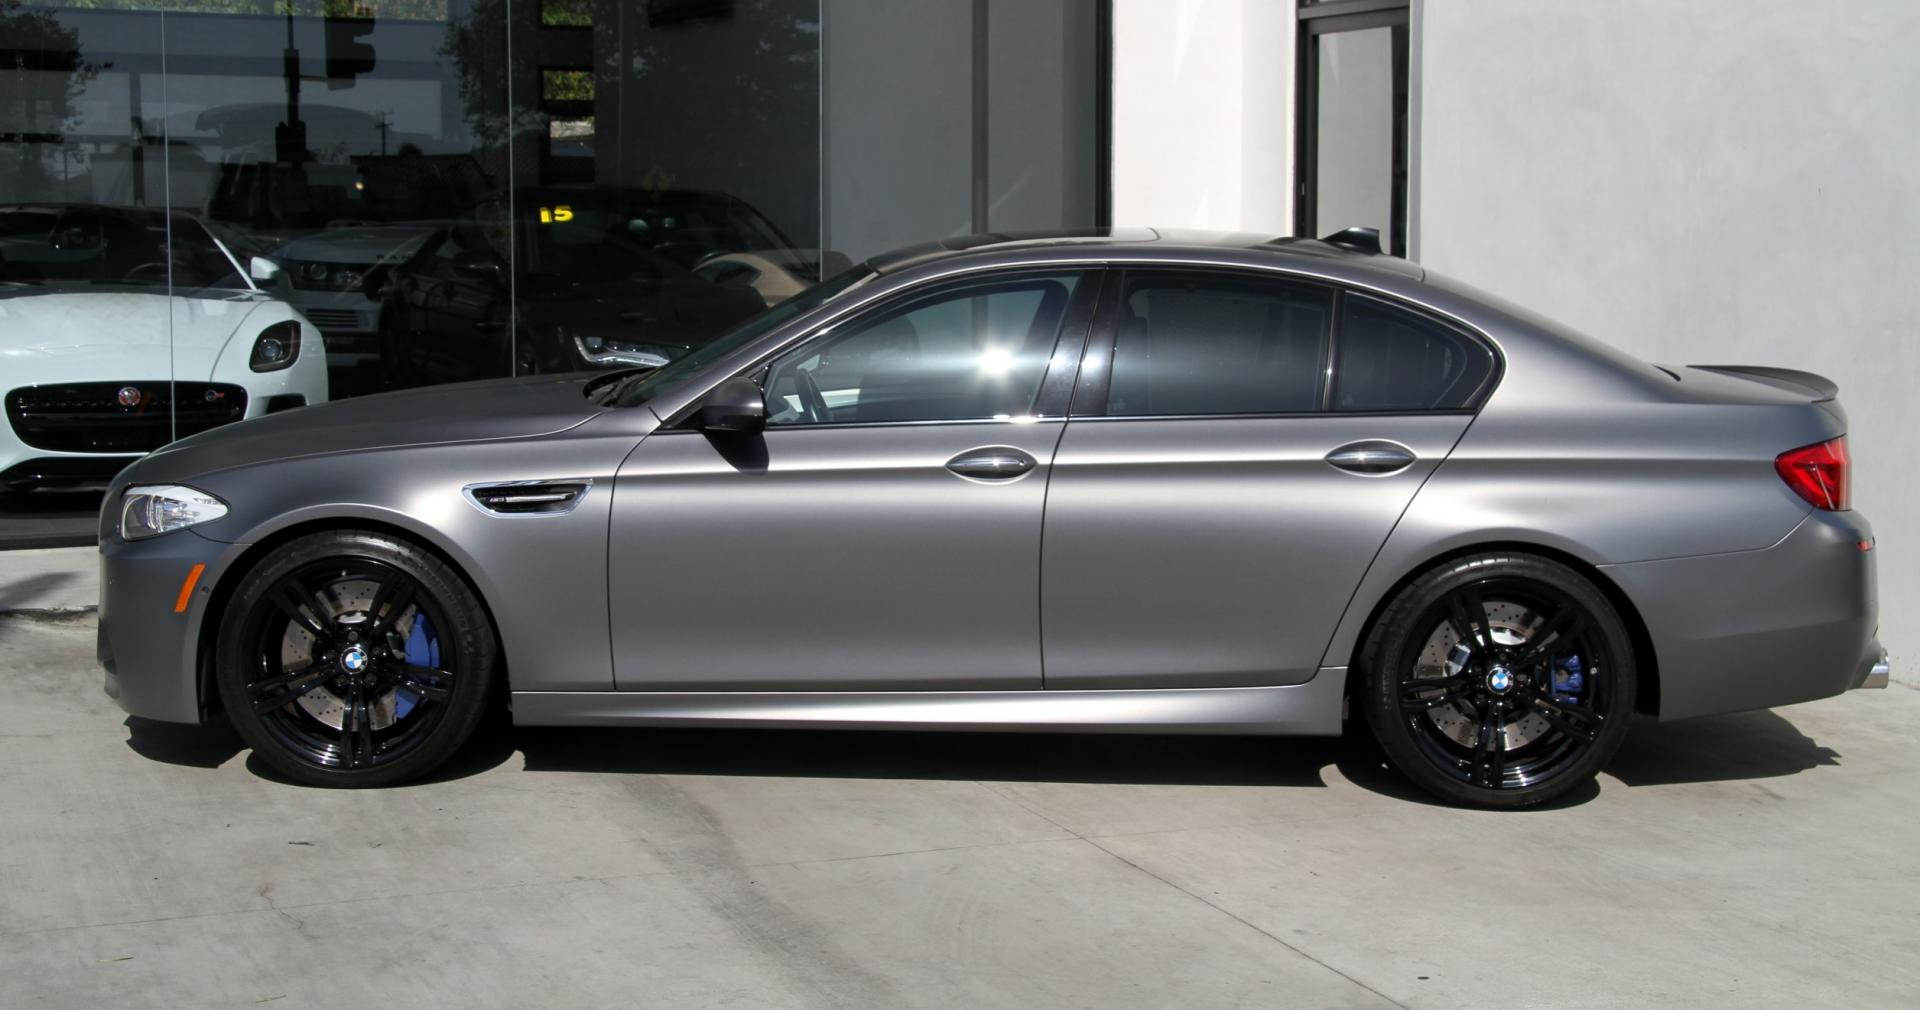 Bmw Dealership Near Me >> 2013 BMW M5 ** Matte Paint ** Stock # 6008 for sale near Redondo Beach, CA | CA BMW Dealer